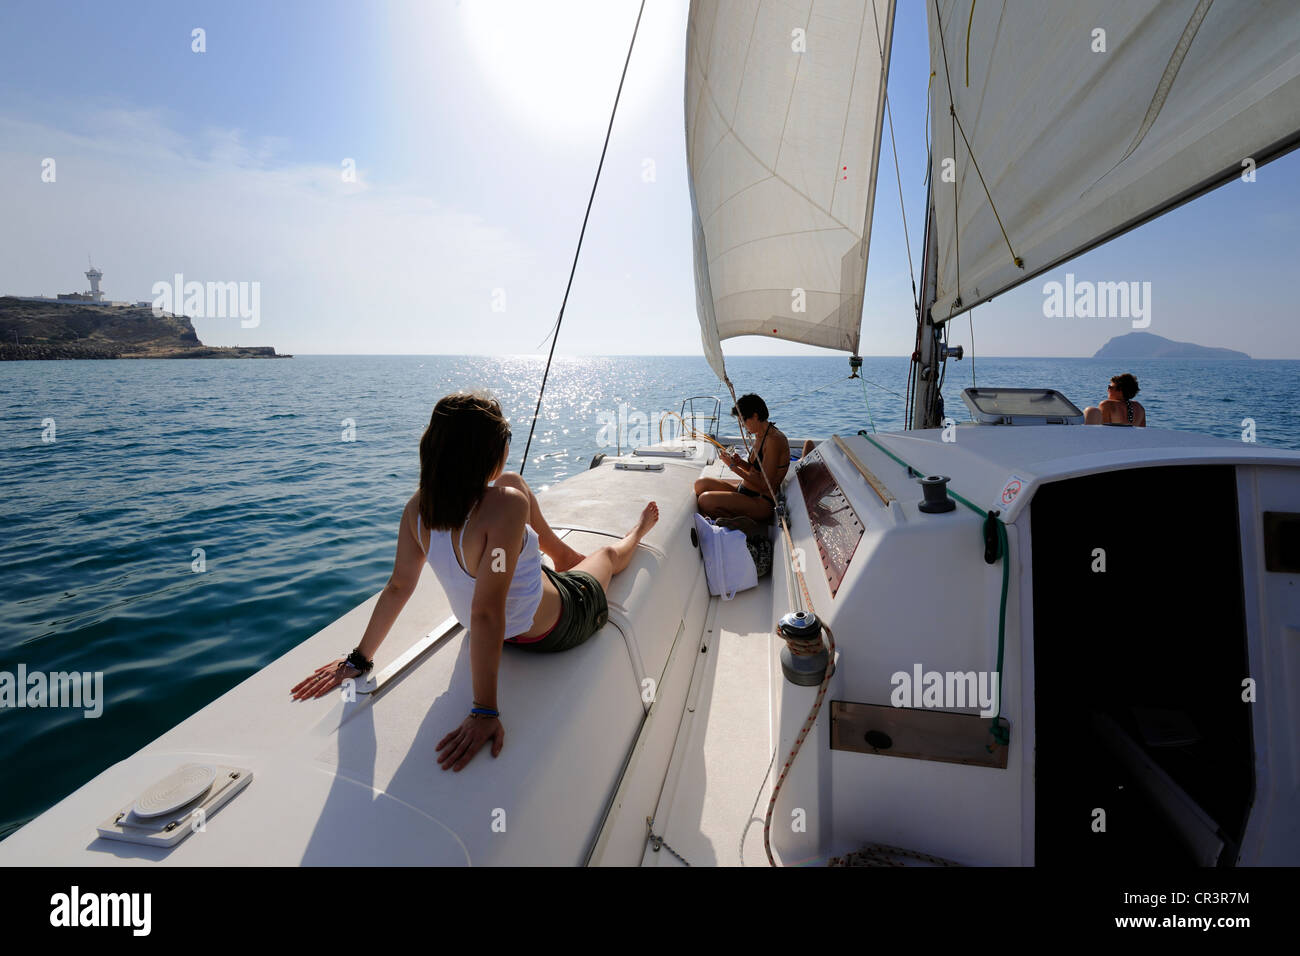 Morocco, Oriental Region, on catamaran board off Ras Kebdana (also called Cabo de Agua) - Stock Image